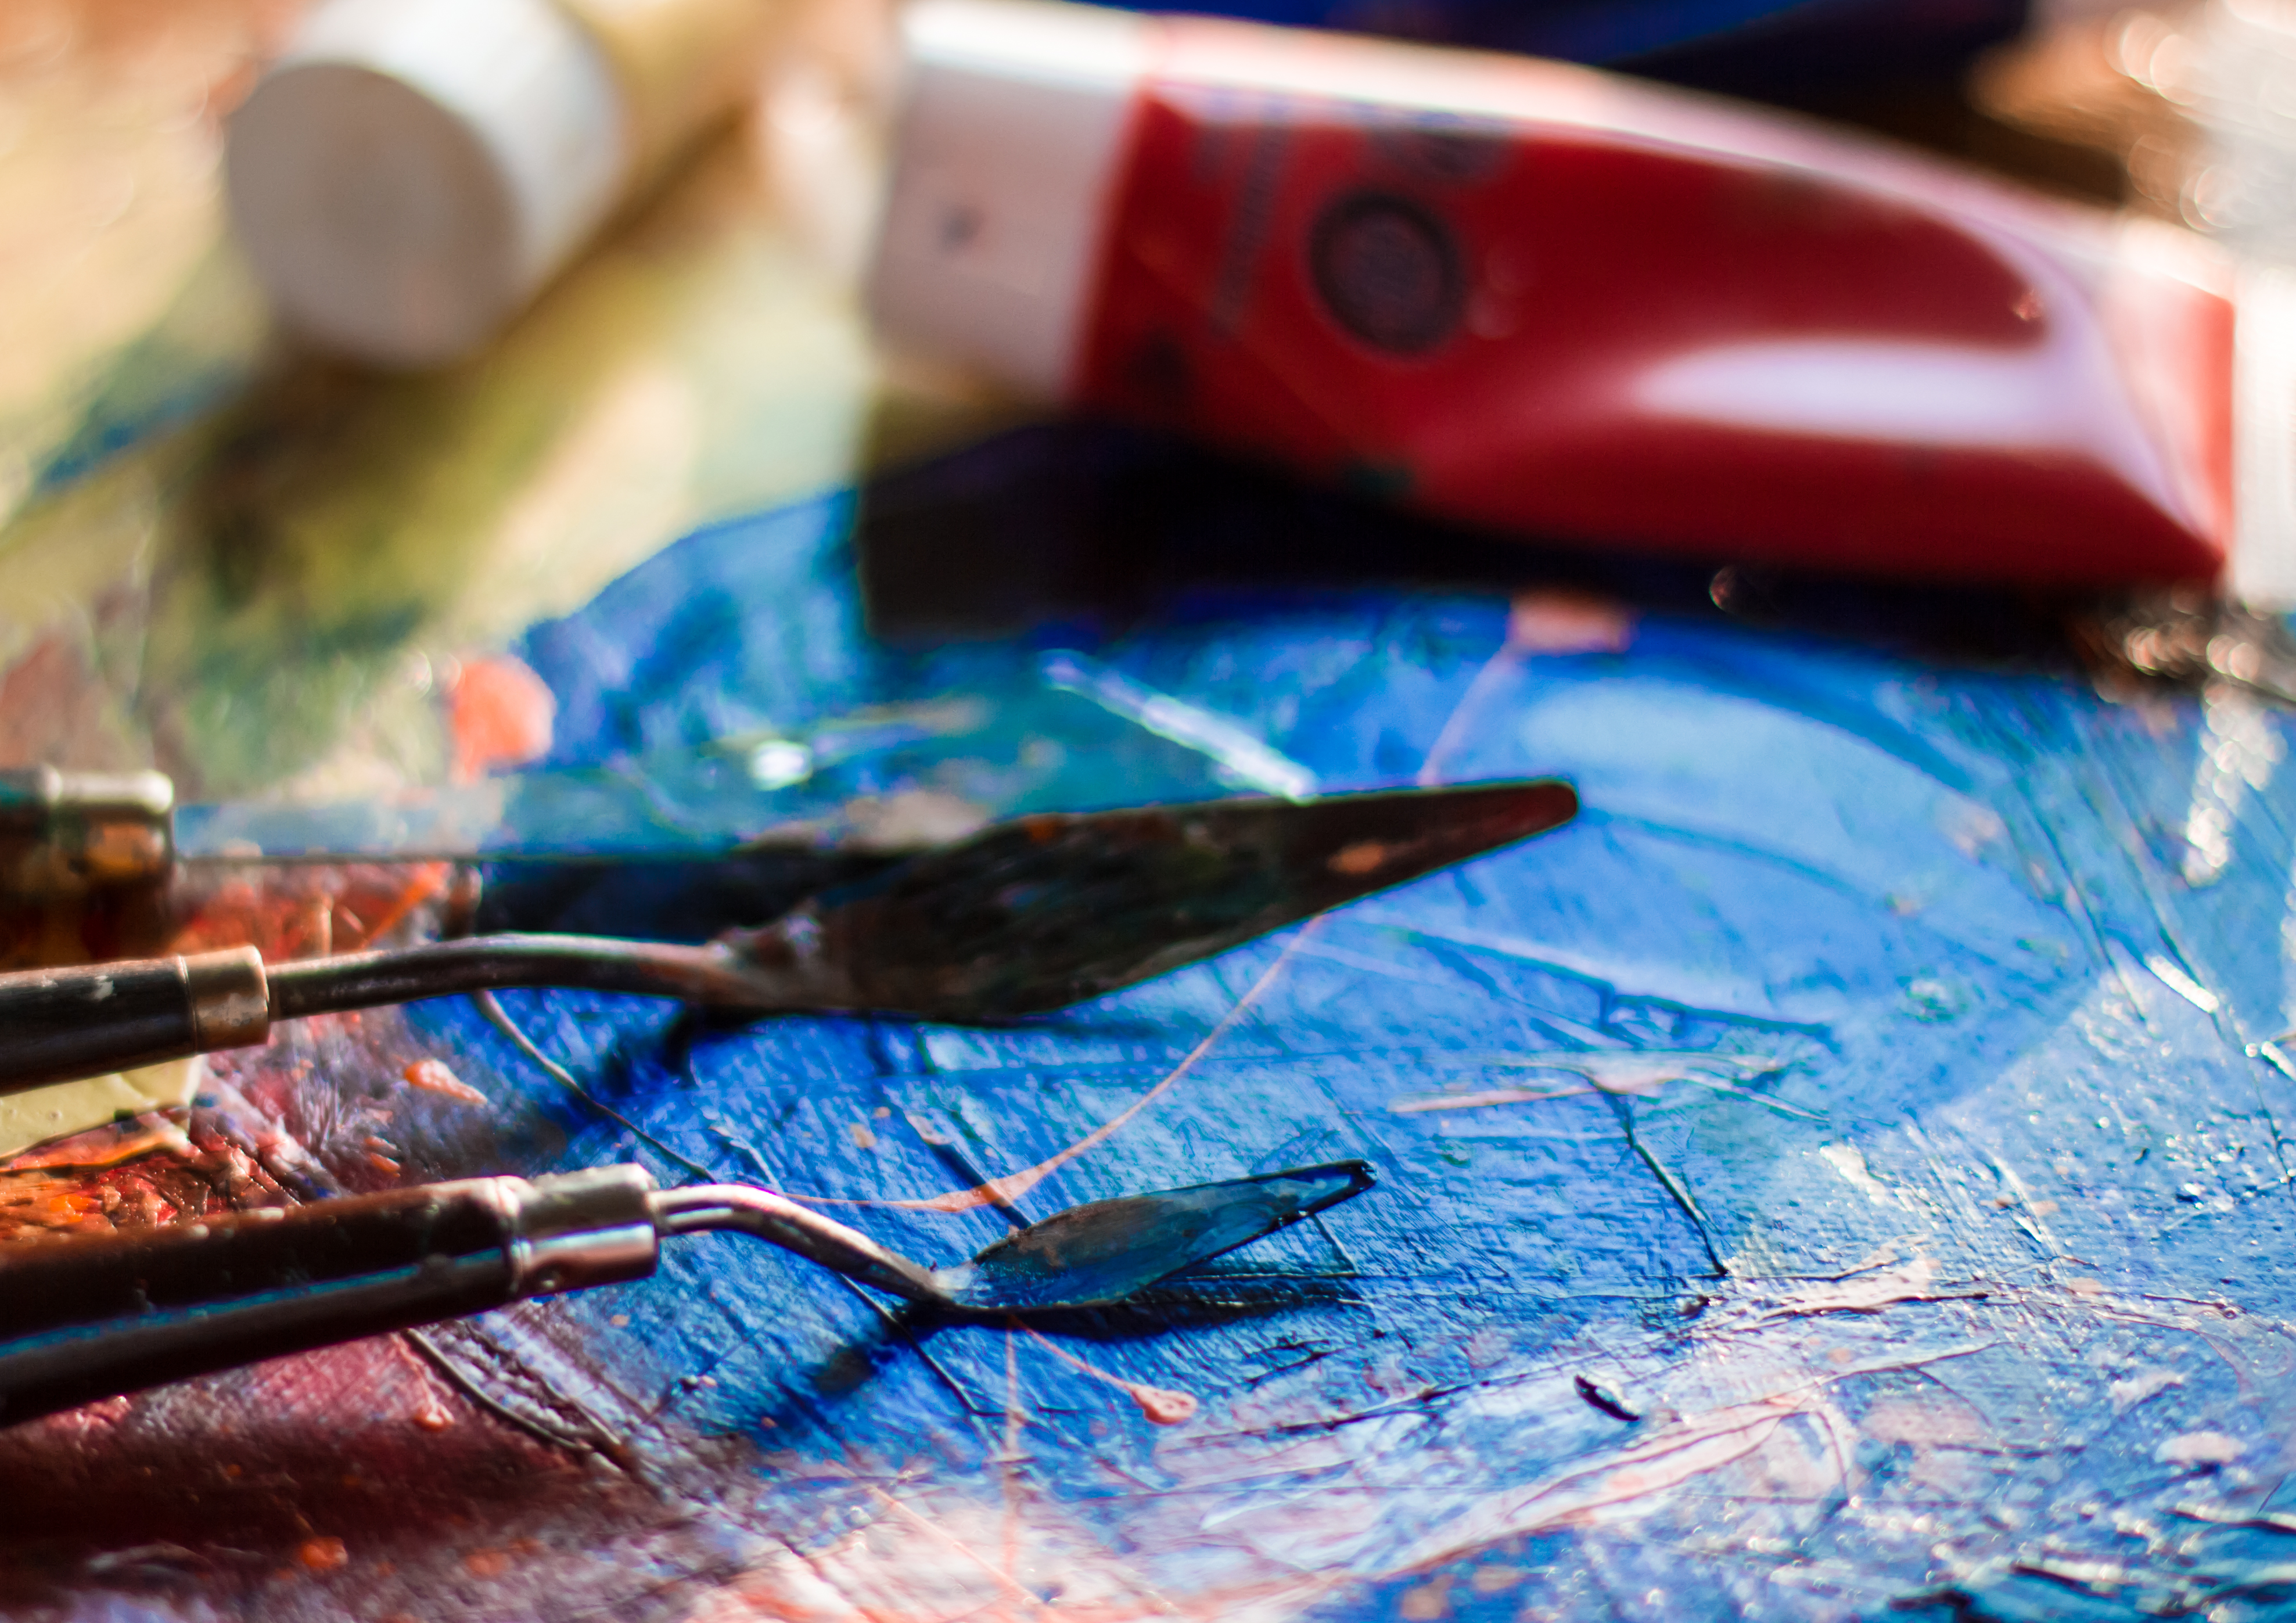 Closeup Photography of Painting Canvas Lot